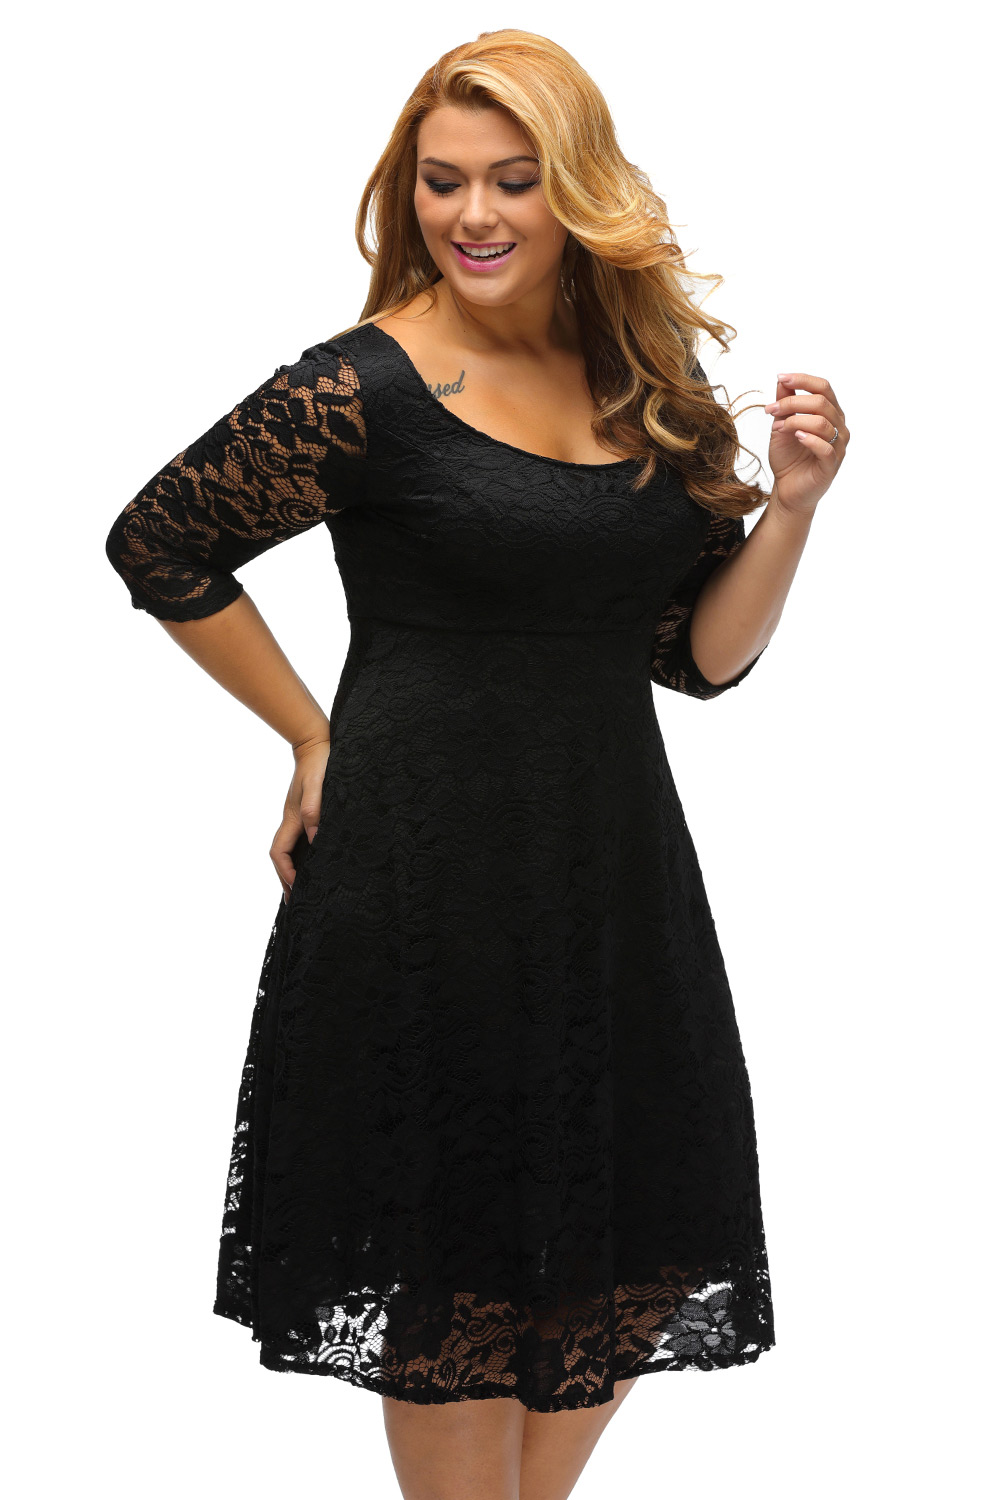 Round Neckline Floral Lace Plus Size Dress Inasari